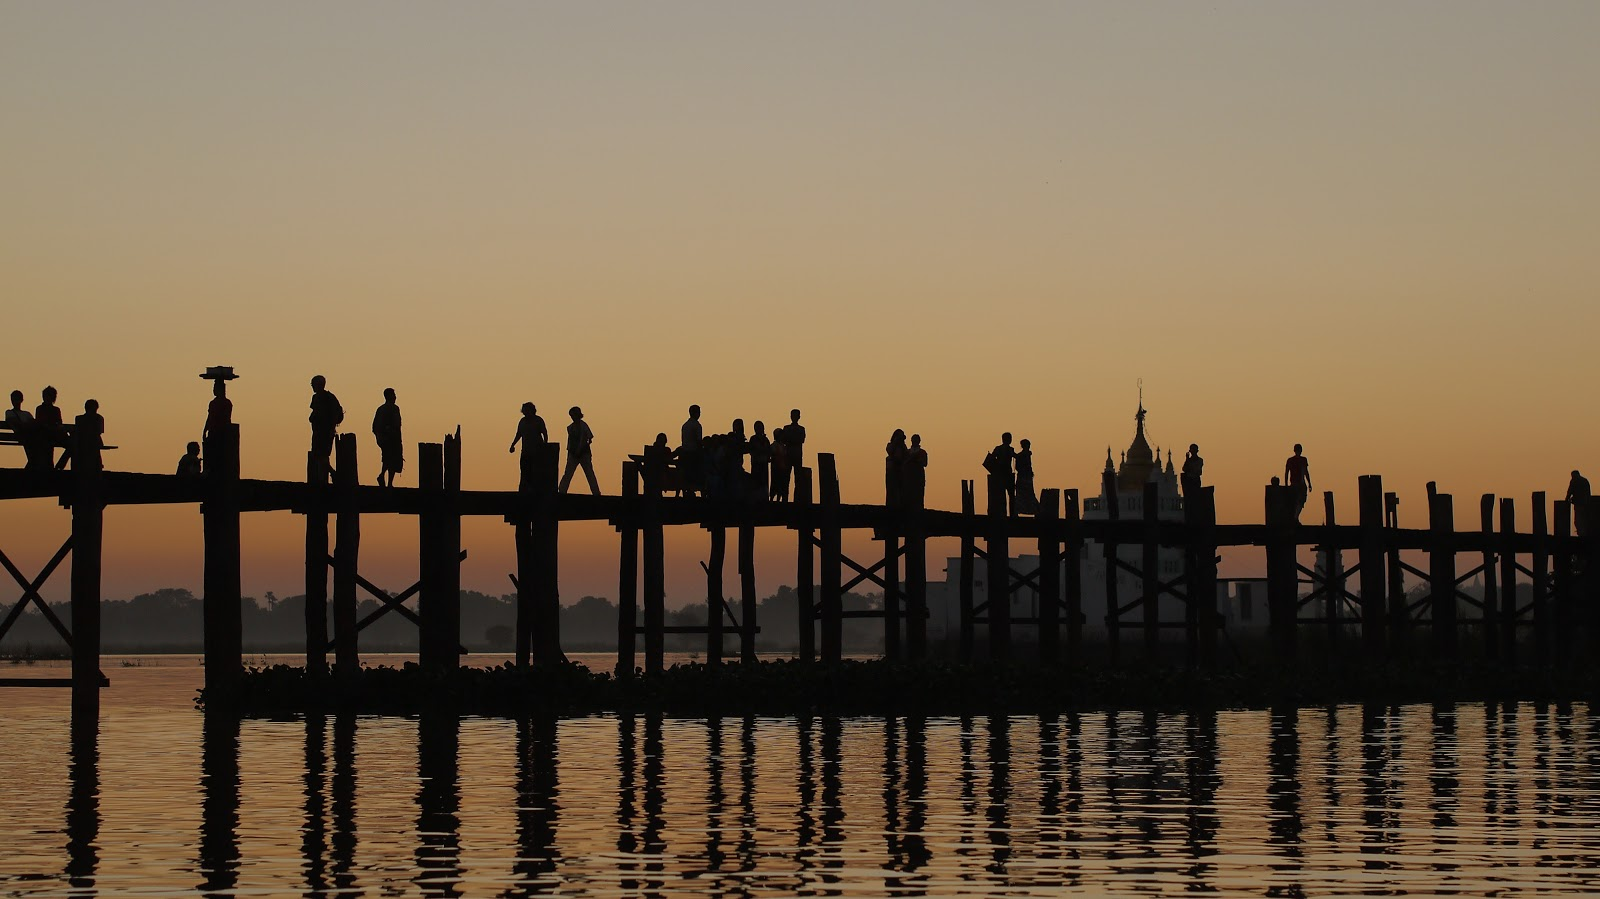 U Bein Bridge Myanmar sunset